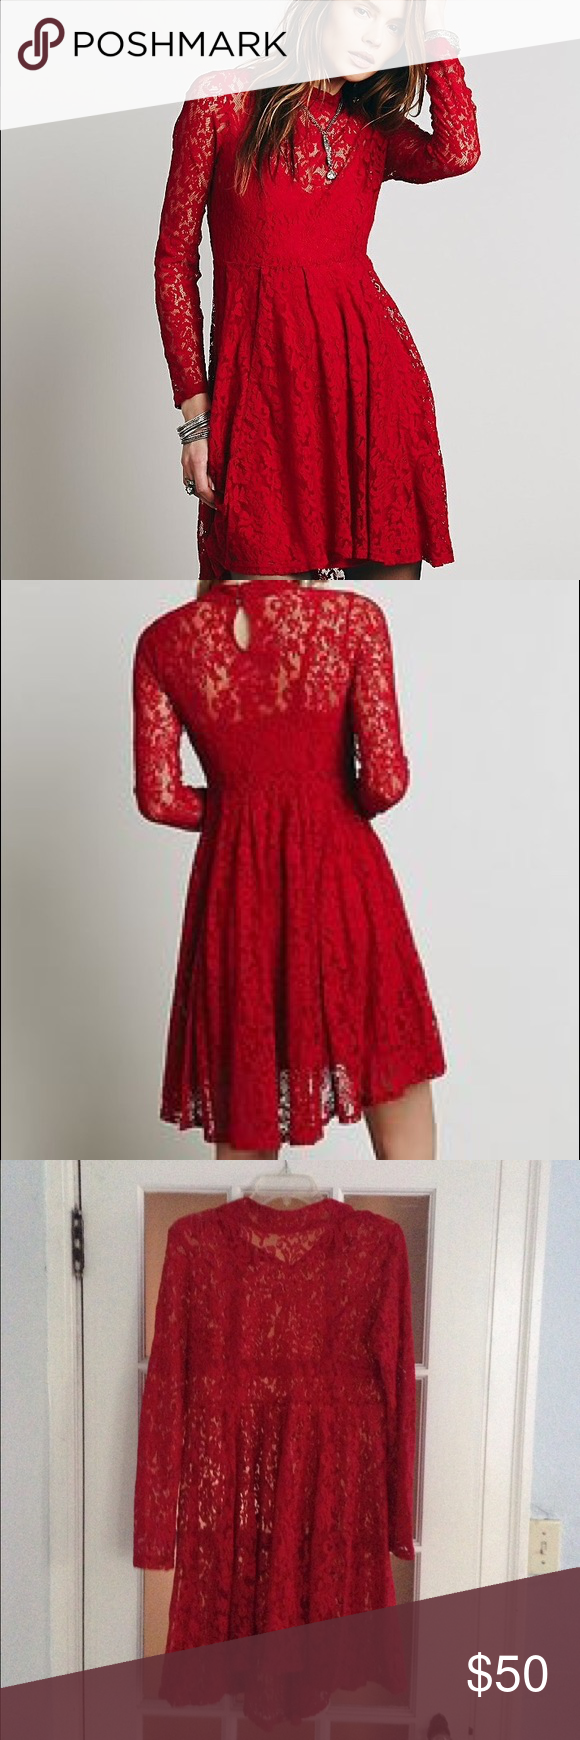 Free people red hearts delight shell only red lace dress long